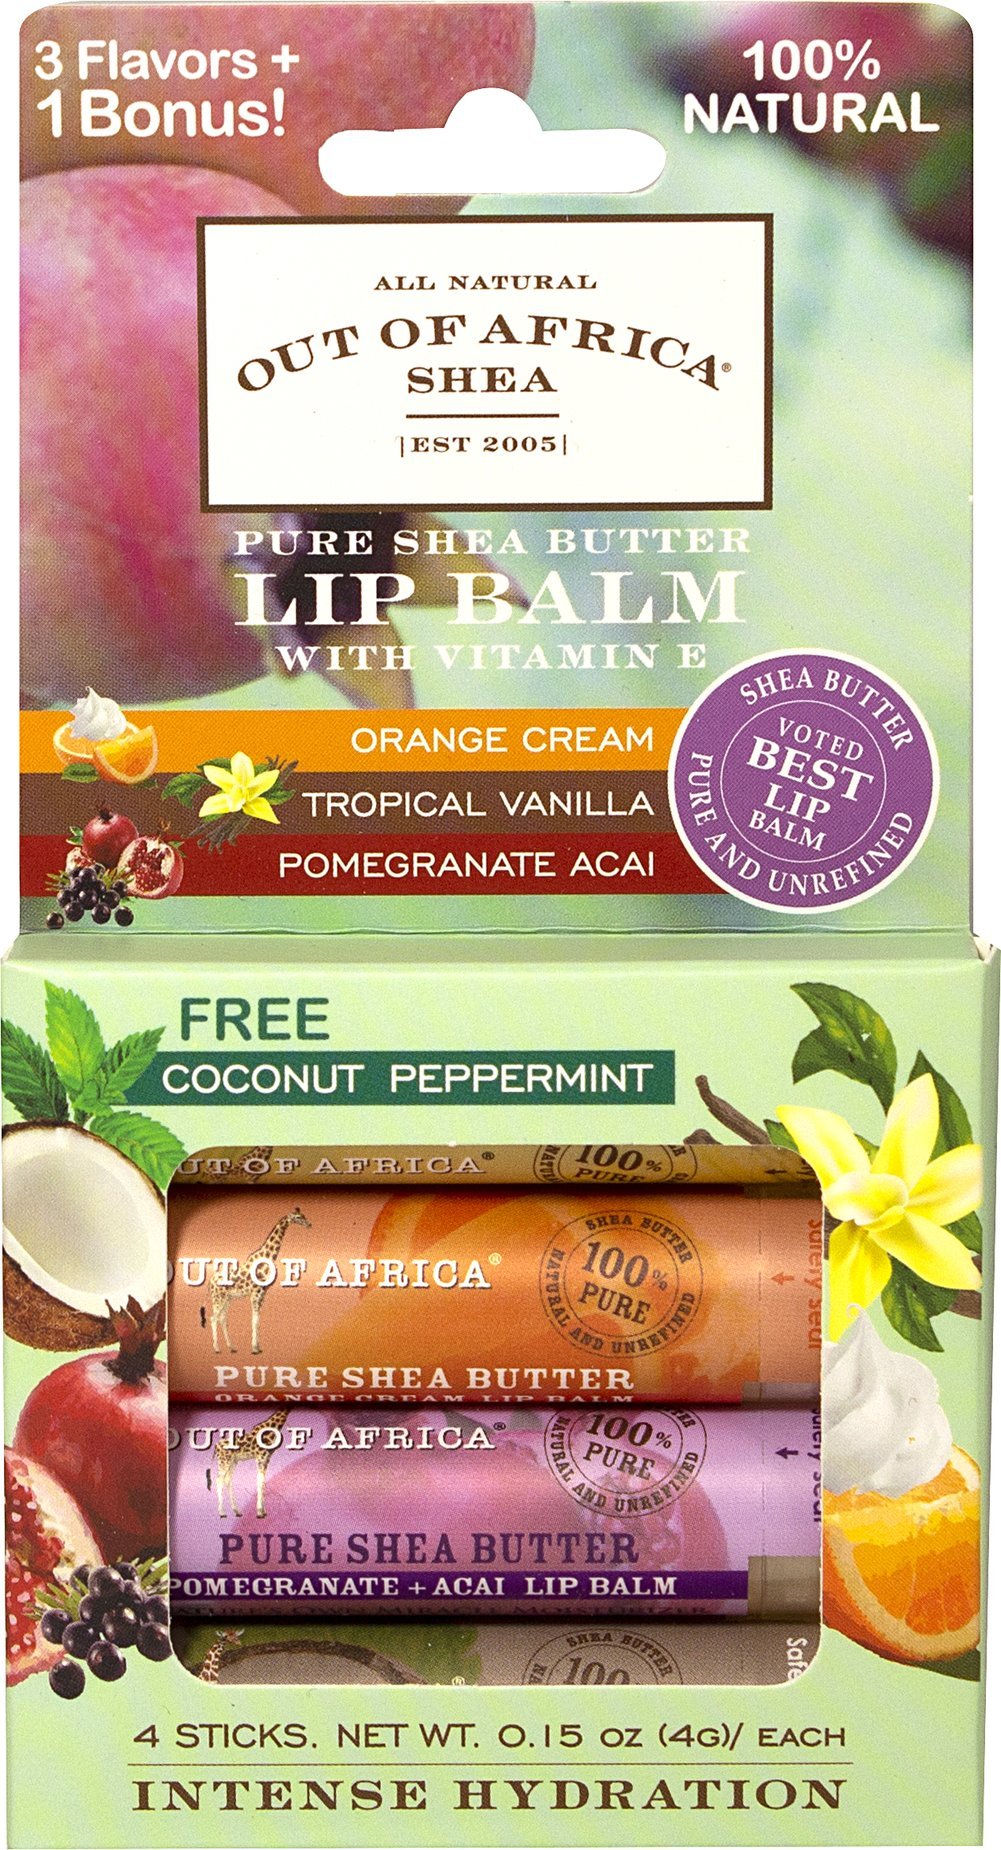 Shea Butter Lip Balm 4-Pack with Tropical Vanilla, Strawberrry, Orange Cream & Pomegranate Acai <p><strong>From the Manufacturer's Label:</strong><br /><br />The skin on your lips is very thin and does not produce oil on its own to keep them moisturized, so they become dry or chapped.  To prevent this condition, use our lip balm, which is loaded with beneficial nutrients including pure unrefined shea butter, healthy fatty acids and antioxidant vitam